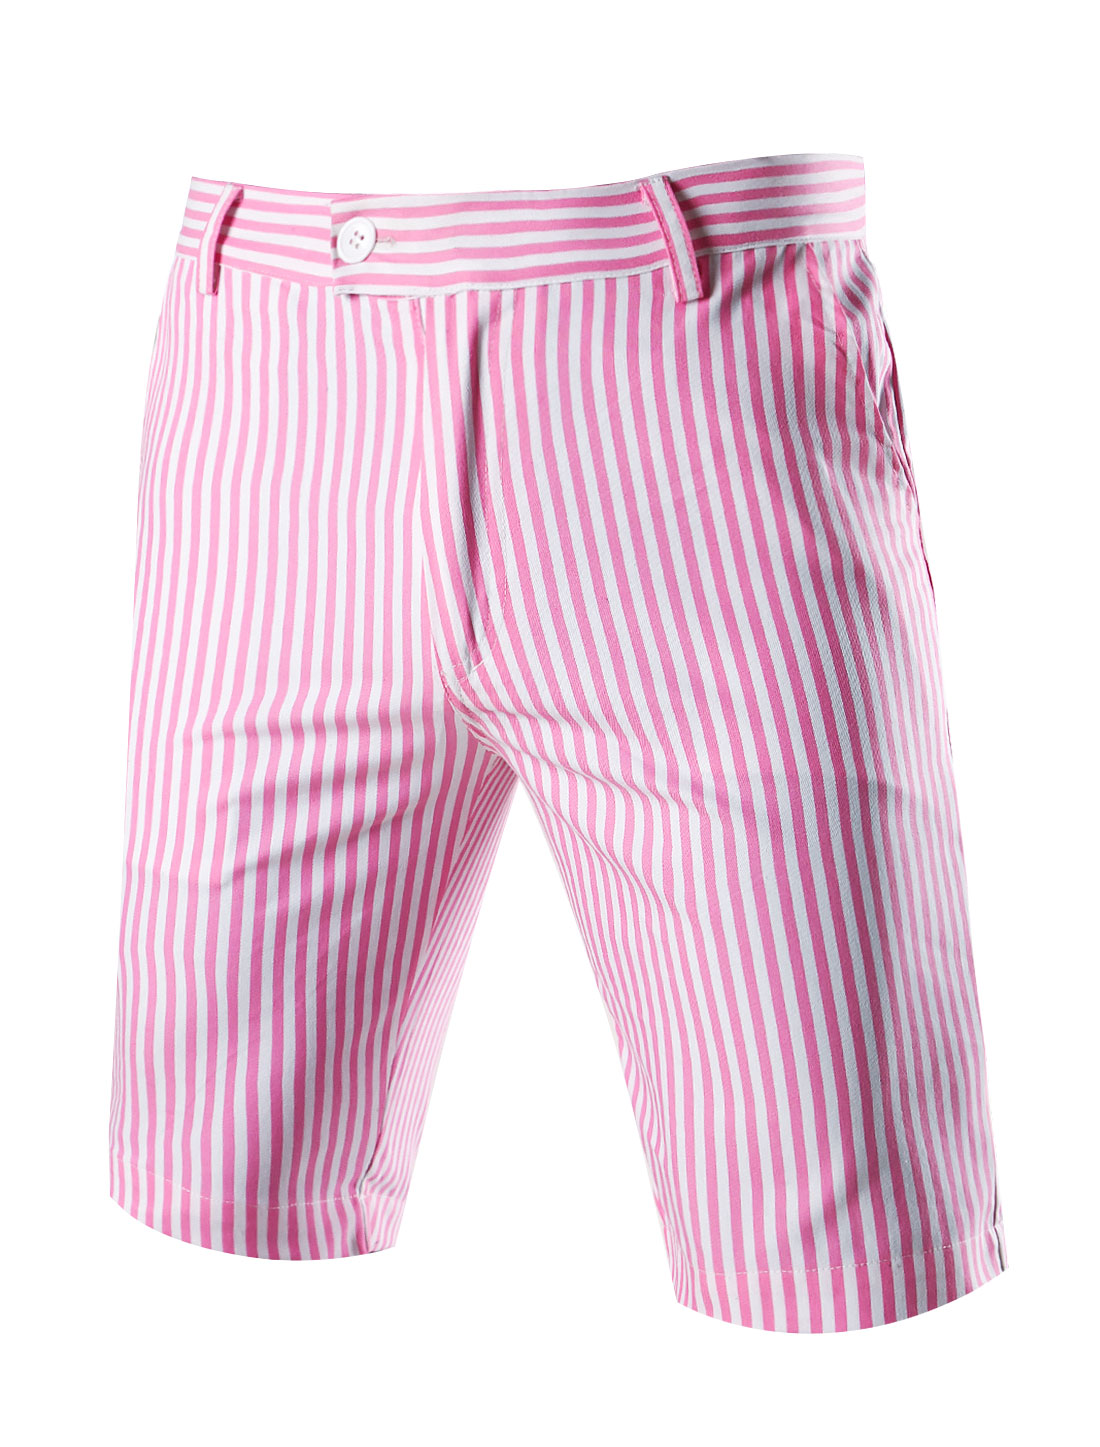 Men Vertical Stripes Four Pockets Casual Chino Shorts Pink W30